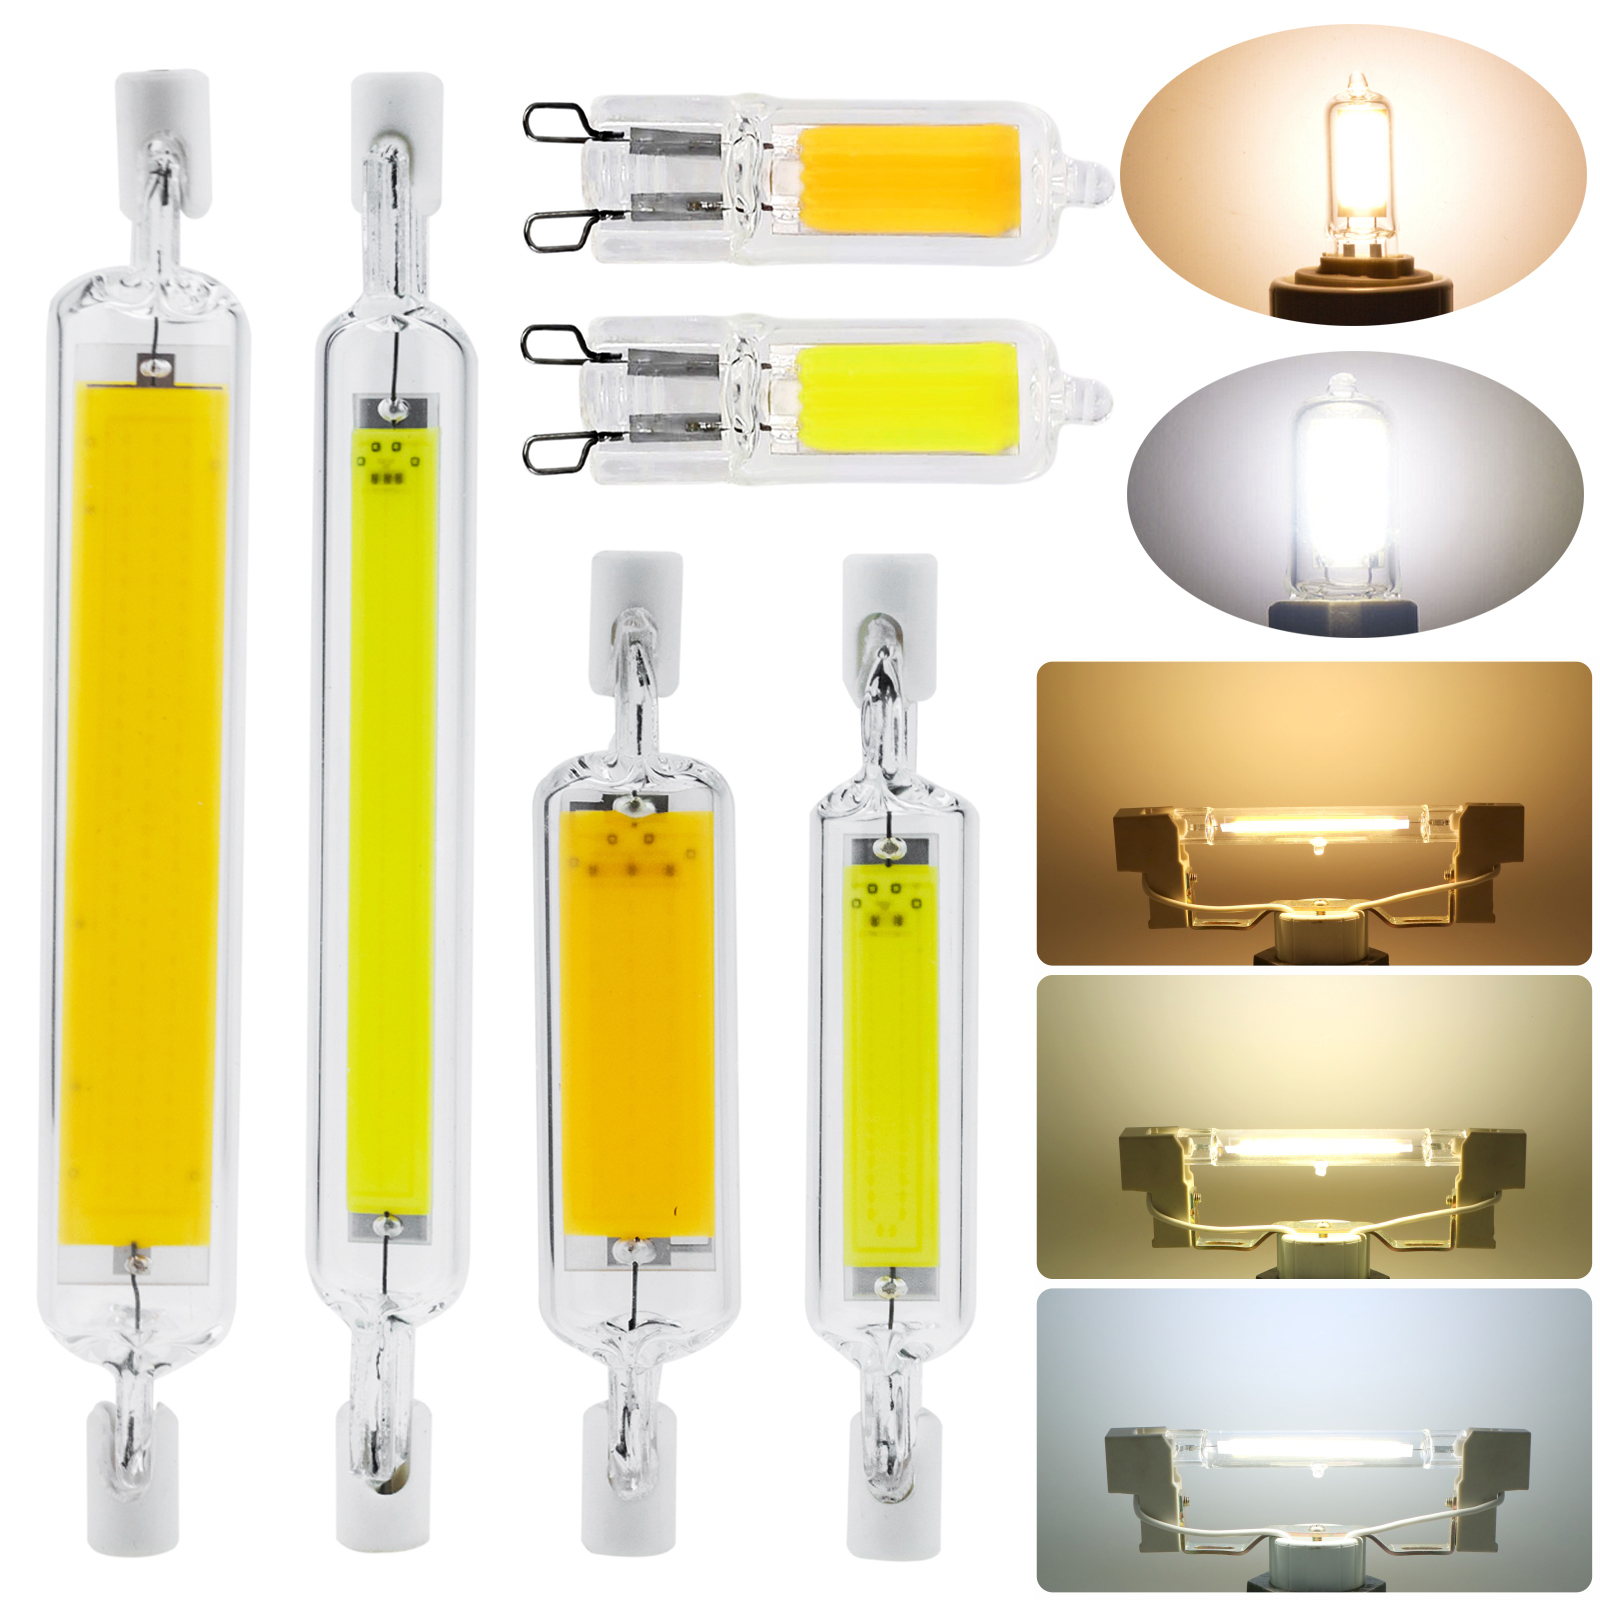 G9 R7s LED COB Light Bulbs Dimmable 78mm 118mm J-type Glass+Ceramics Replace Halogen Lamps 3W 5W 6W 12W 20W Floodlight 110V-240V